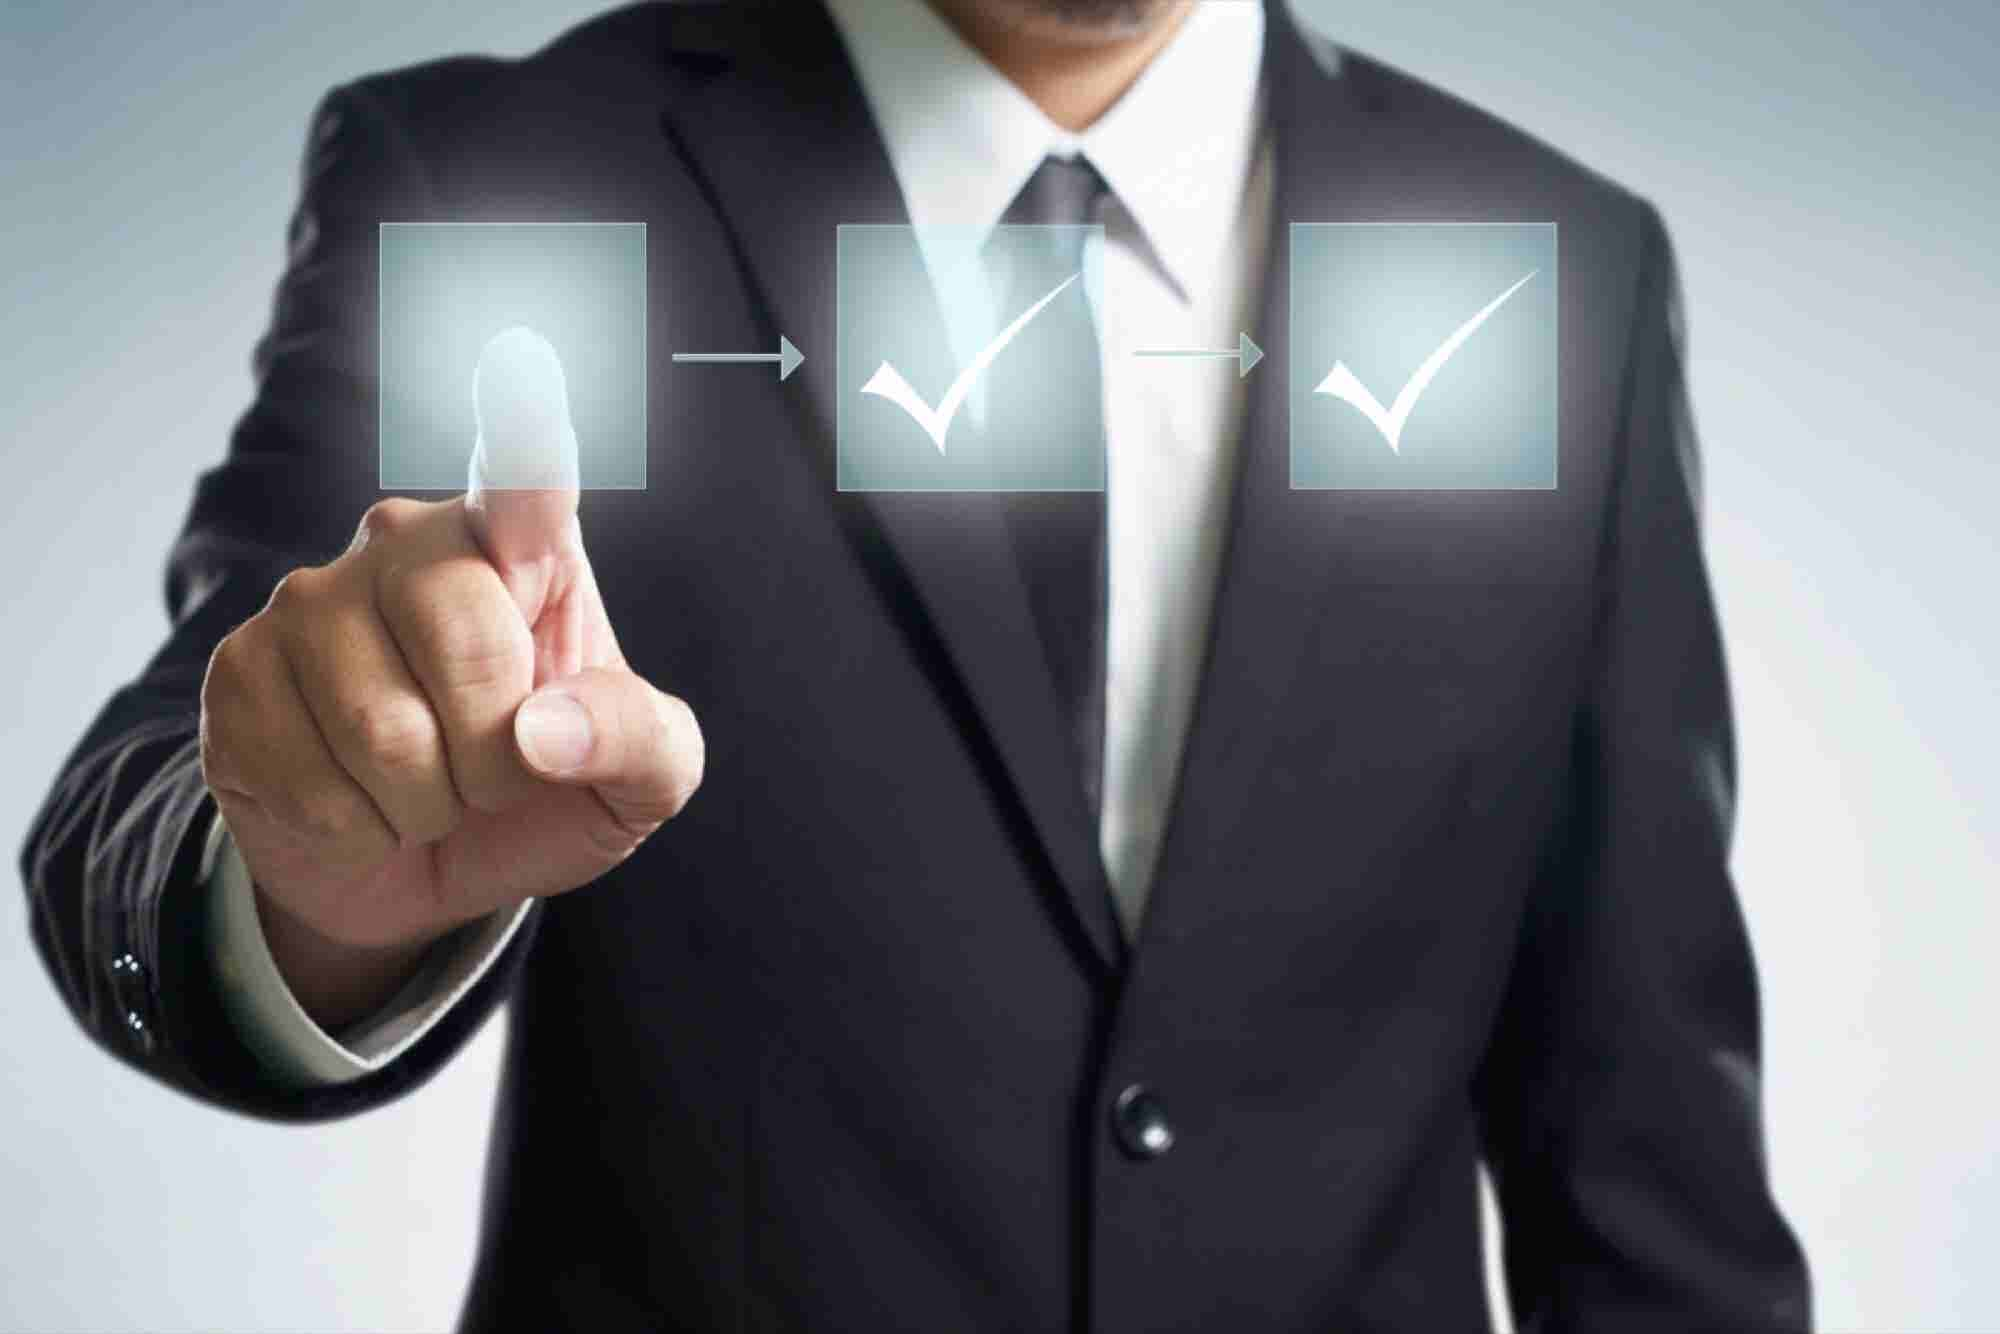 Applying Triage System can Lead to Better Management Process